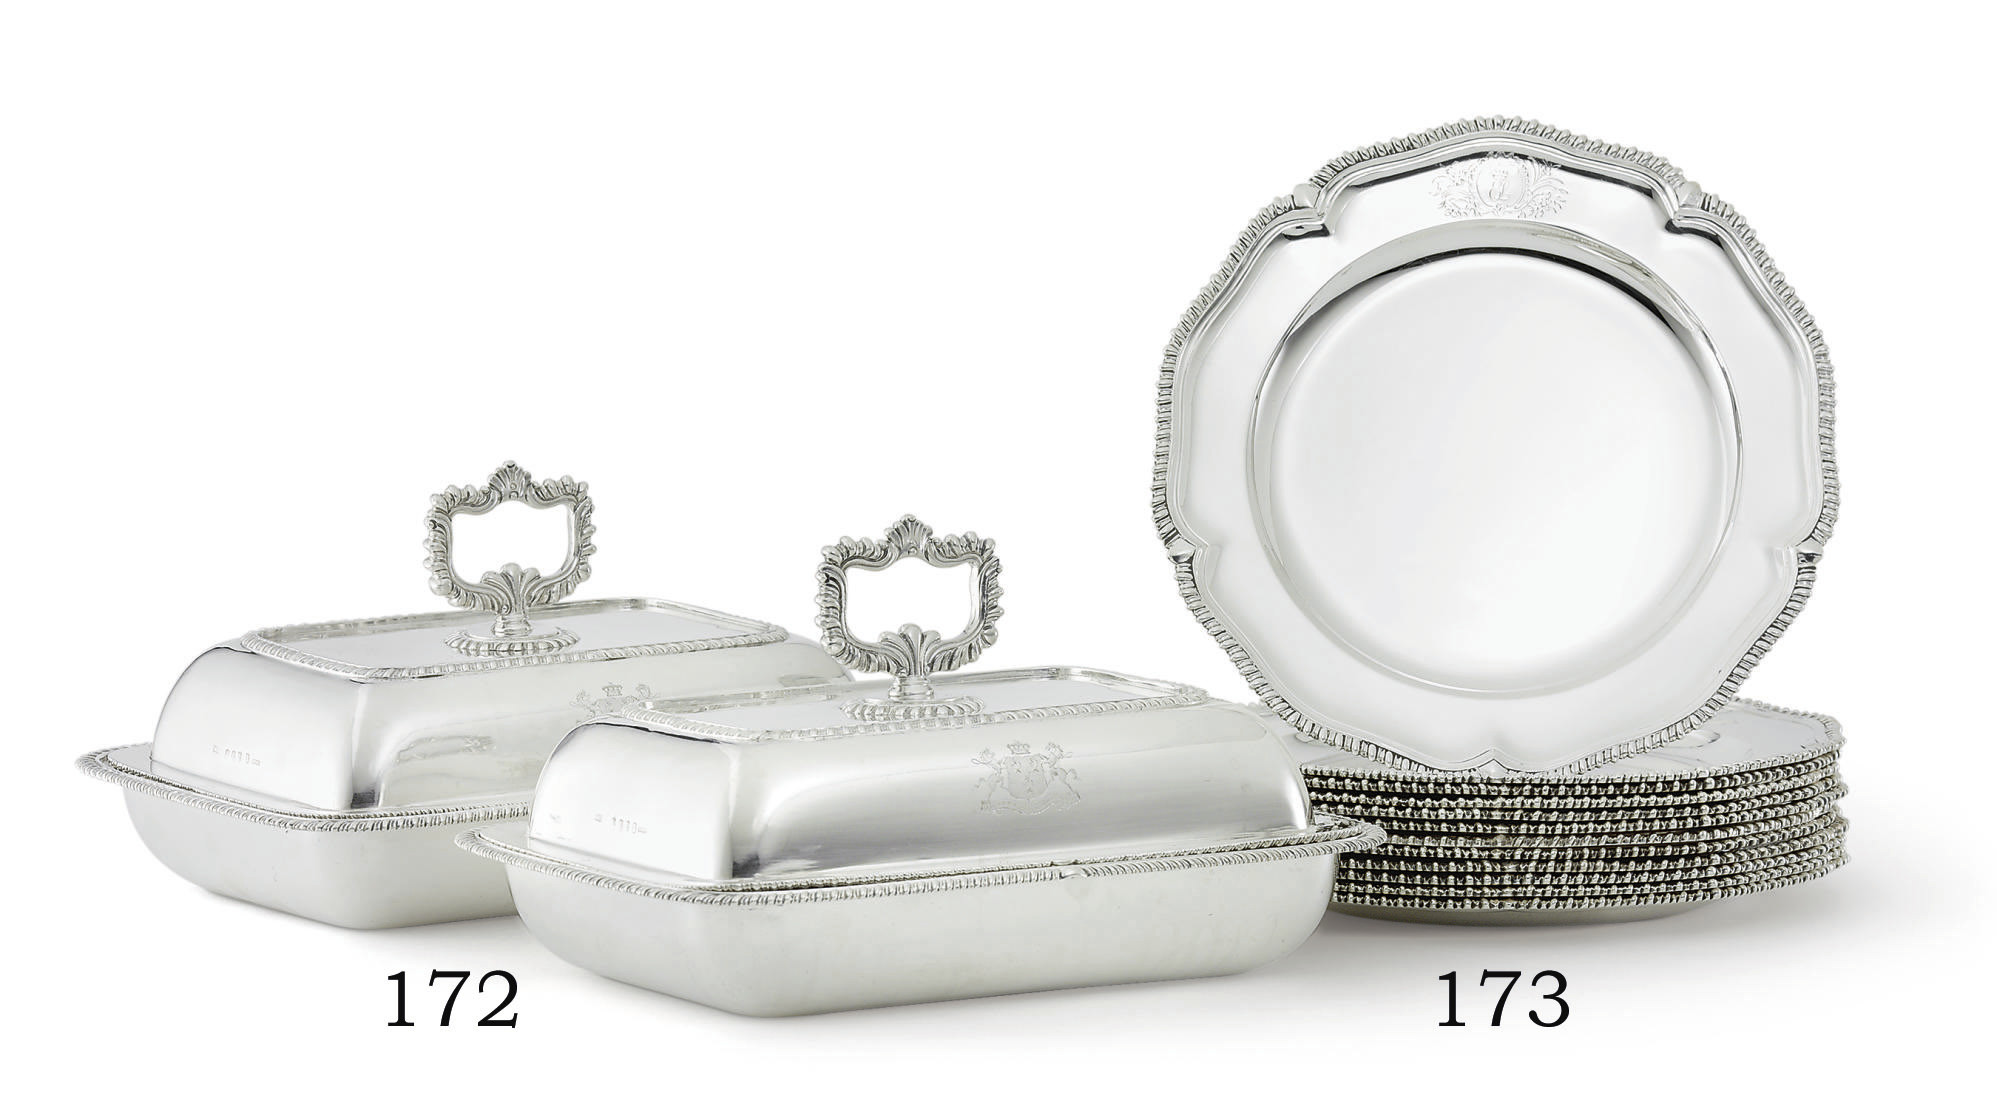 A PAIR OF REGENCY IRISH SILVER ENTREE DISHES